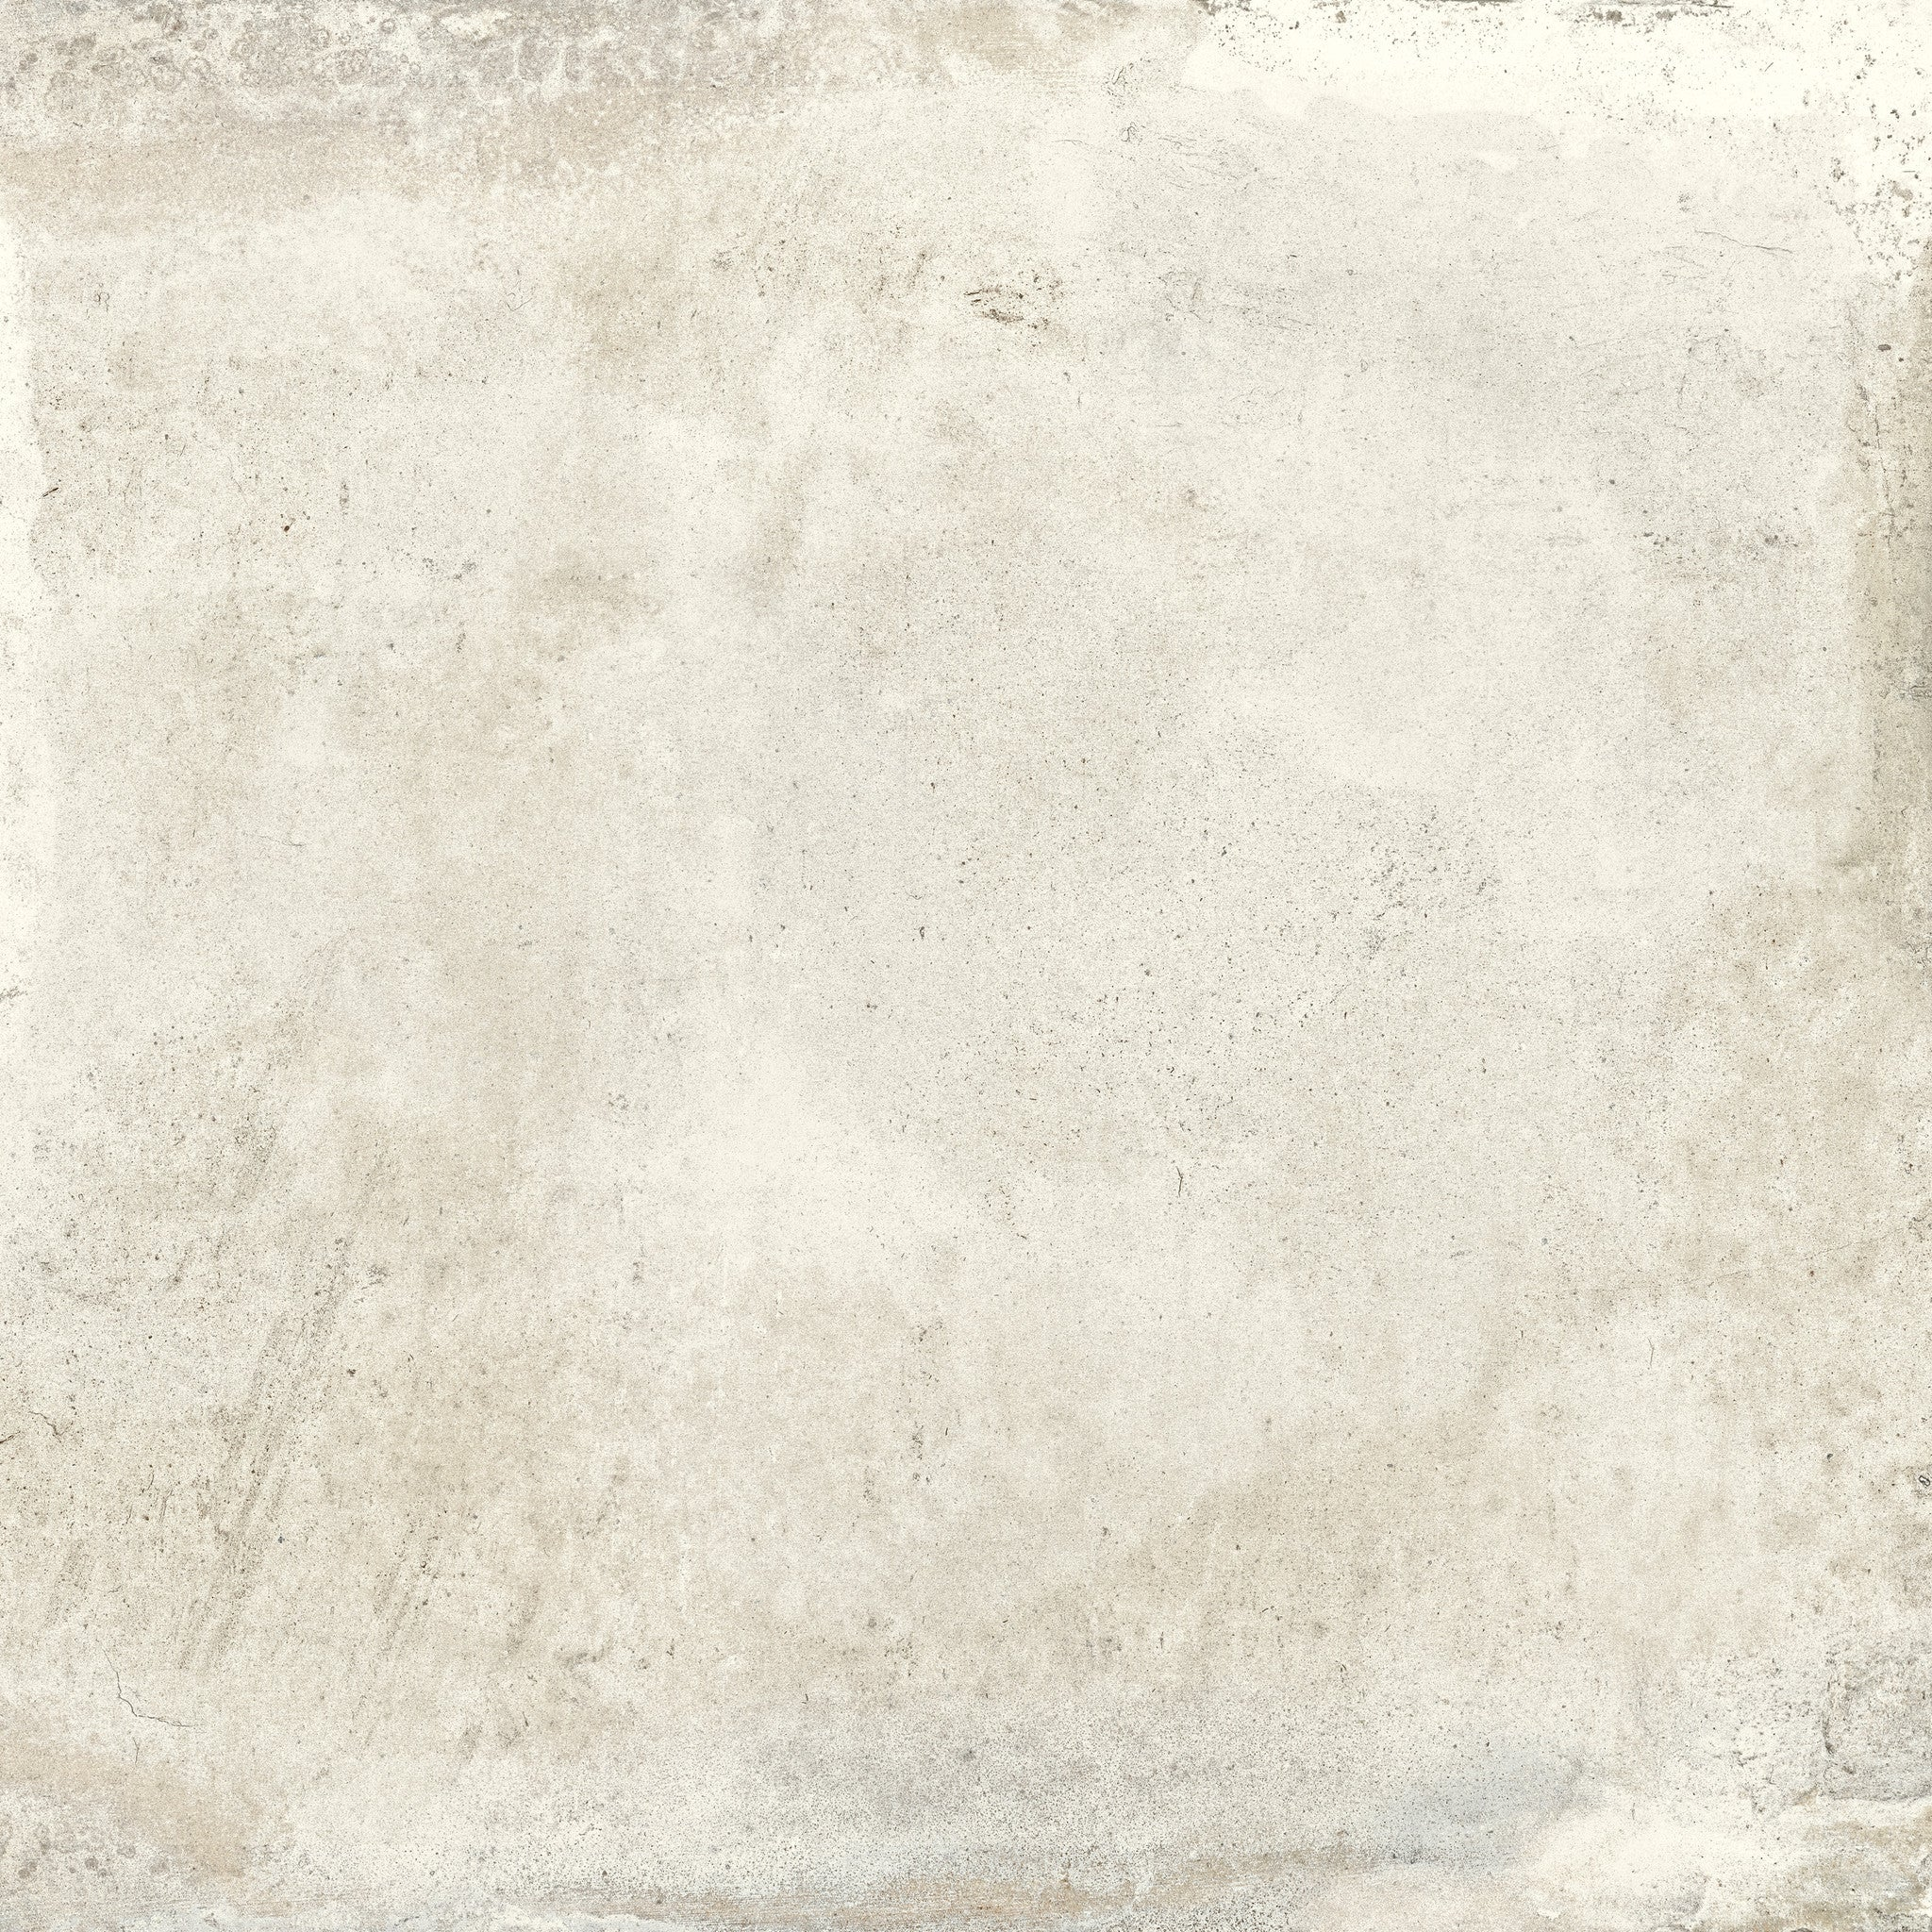 Borigni 18 X35 Glazed Body Match Porcelain Tile By Emser The Flooring Factory